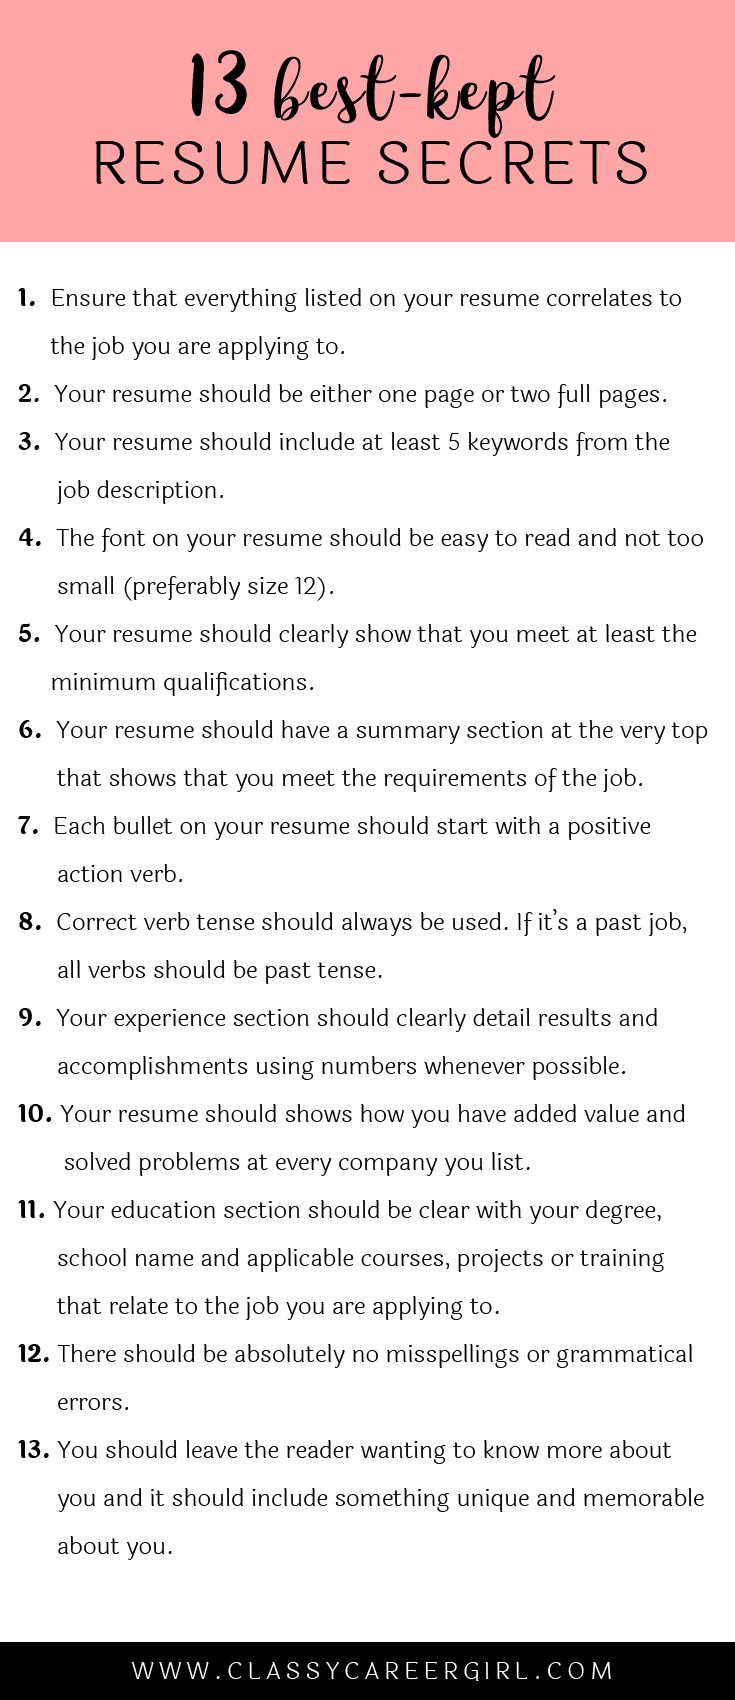 Opposenewapstandardsus  Unusual  Ideas About Resume On Pinterest  Cv Format Resume Cv And  With Great Some Hiring Managers Will Toss Your Resume Out If You Dont Know These  With Nice Engineer Resume Sample Also Restaurant Supervisor Resume In Addition How To Format References On Resume And Worst Resumes Ever As Well As Entry Level Pharmaceutical Sales Resume Additionally Resume Writing Services Denver From Pinterestcom With Opposenewapstandardsus  Great  Ideas About Resume On Pinterest  Cv Format Resume Cv And  With Nice Some Hiring Managers Will Toss Your Resume Out If You Dont Know These  And Unusual Engineer Resume Sample Also Restaurant Supervisor Resume In Addition How To Format References On Resume From Pinterestcom